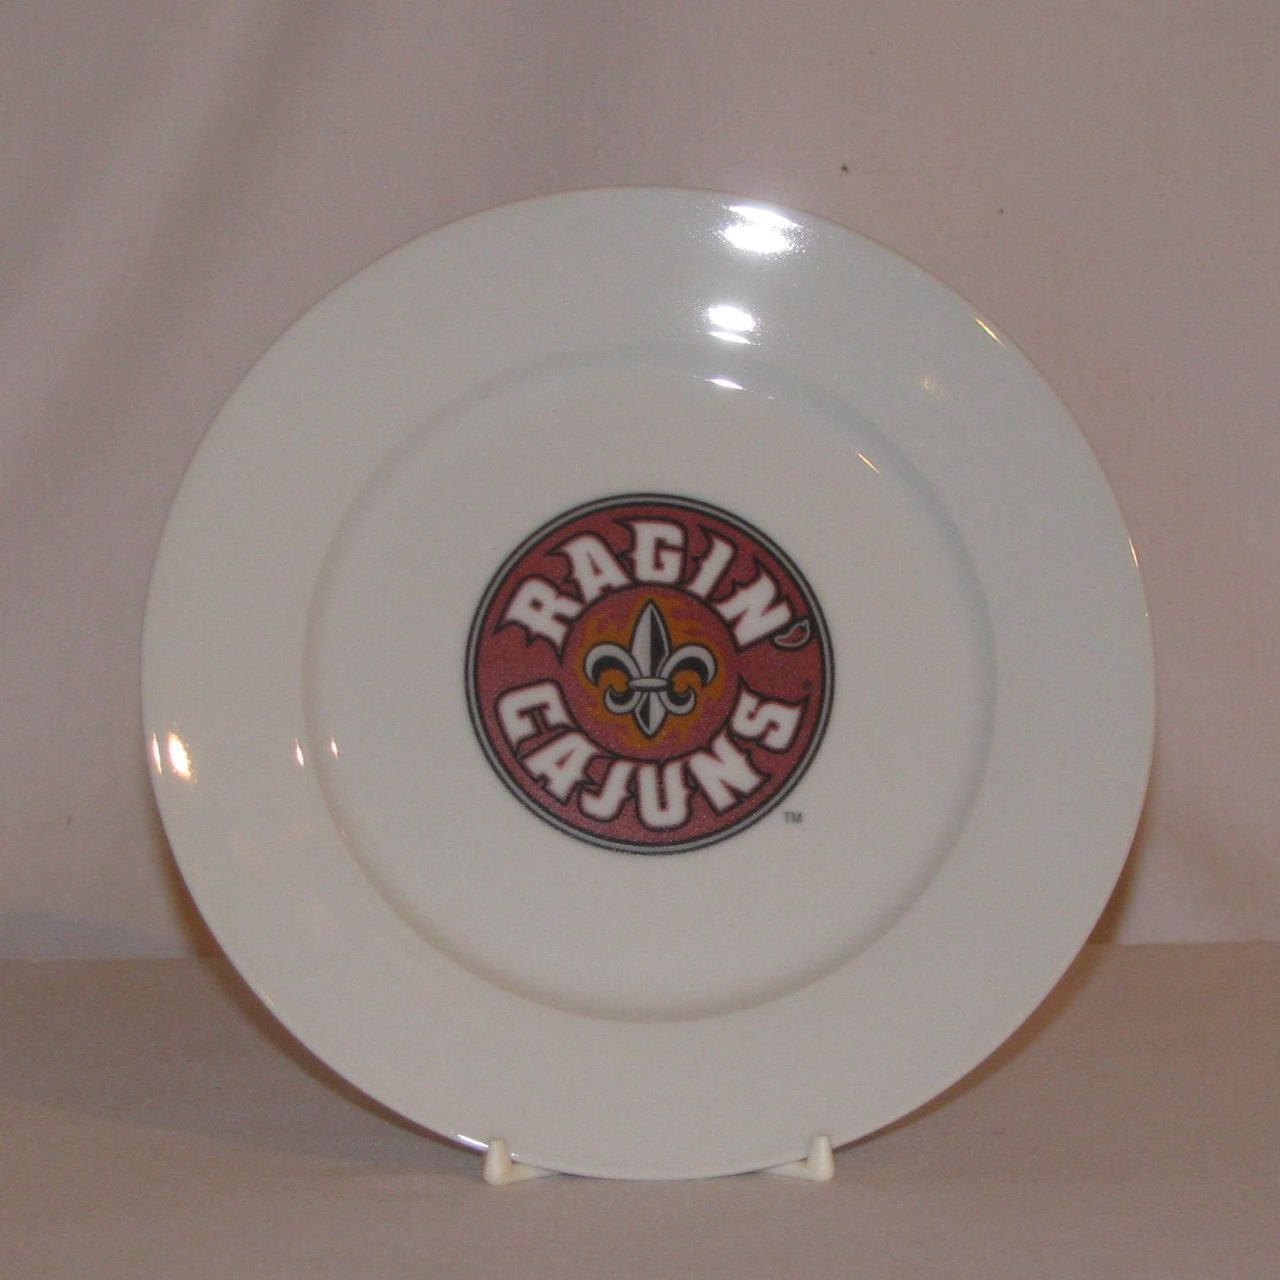 Louisiana Ragin' Cajuns Dinnerware